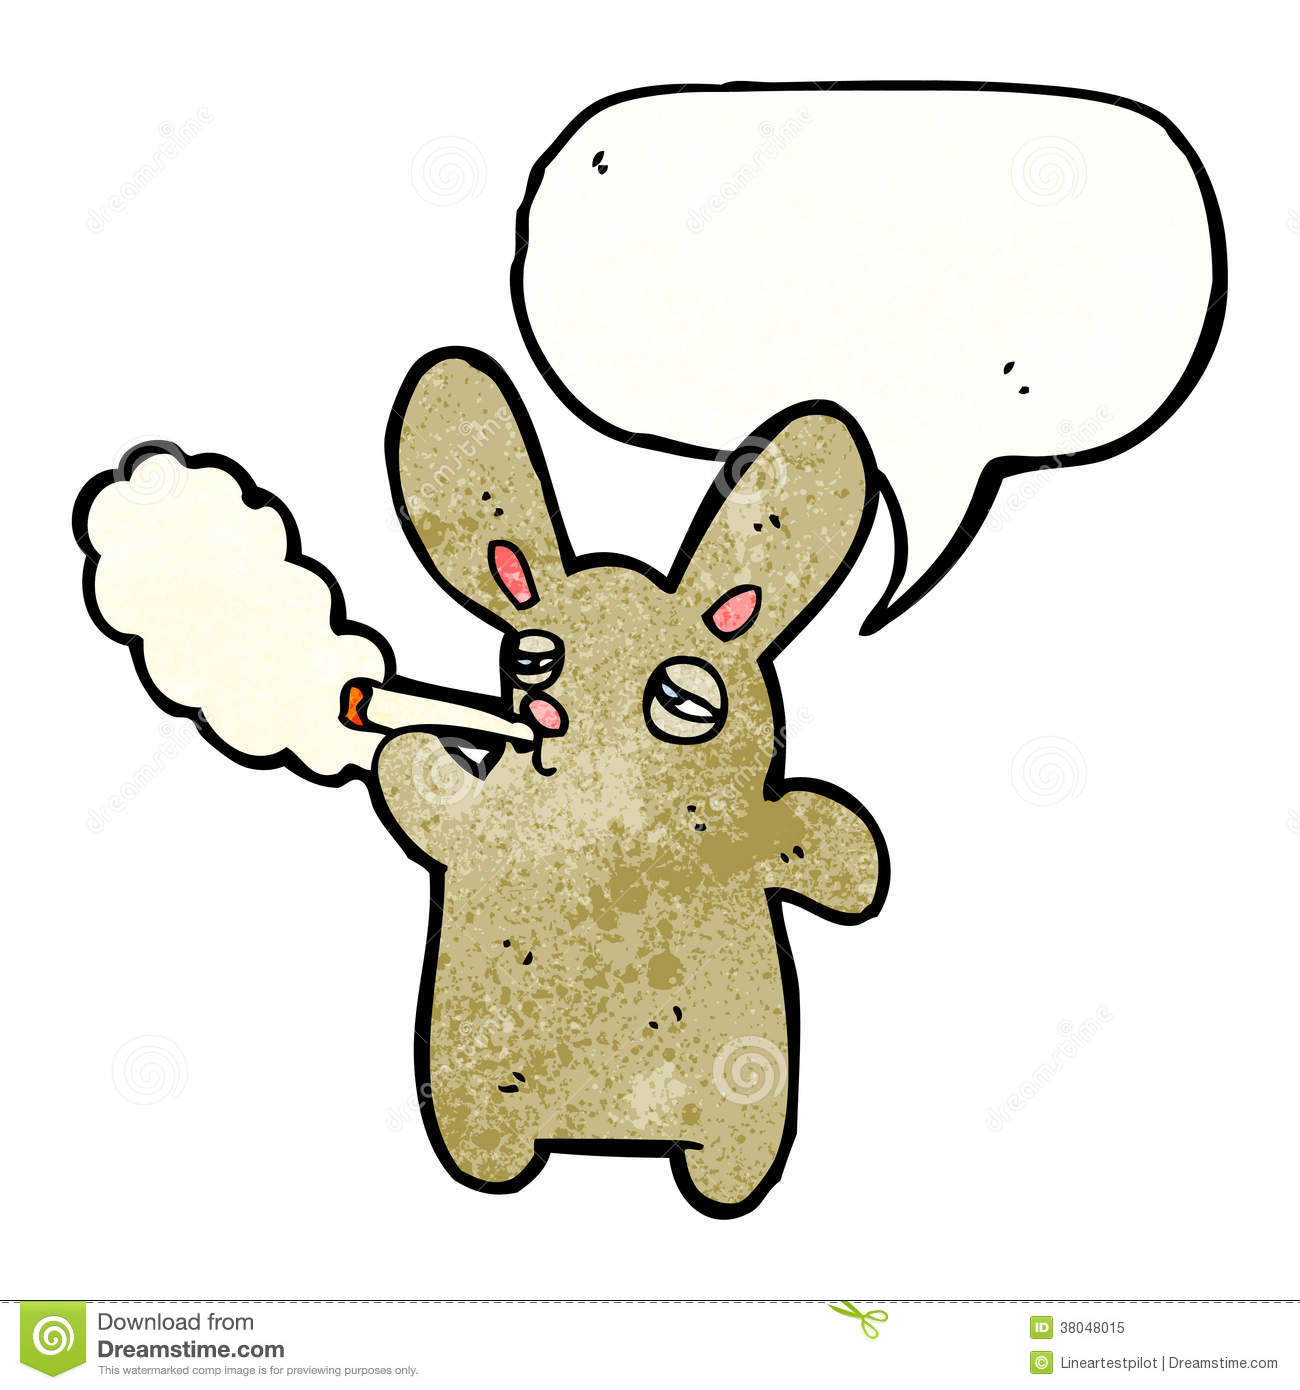 Smoking Rabbit Cartoon Royalty Free Stock Photo Image 38048015